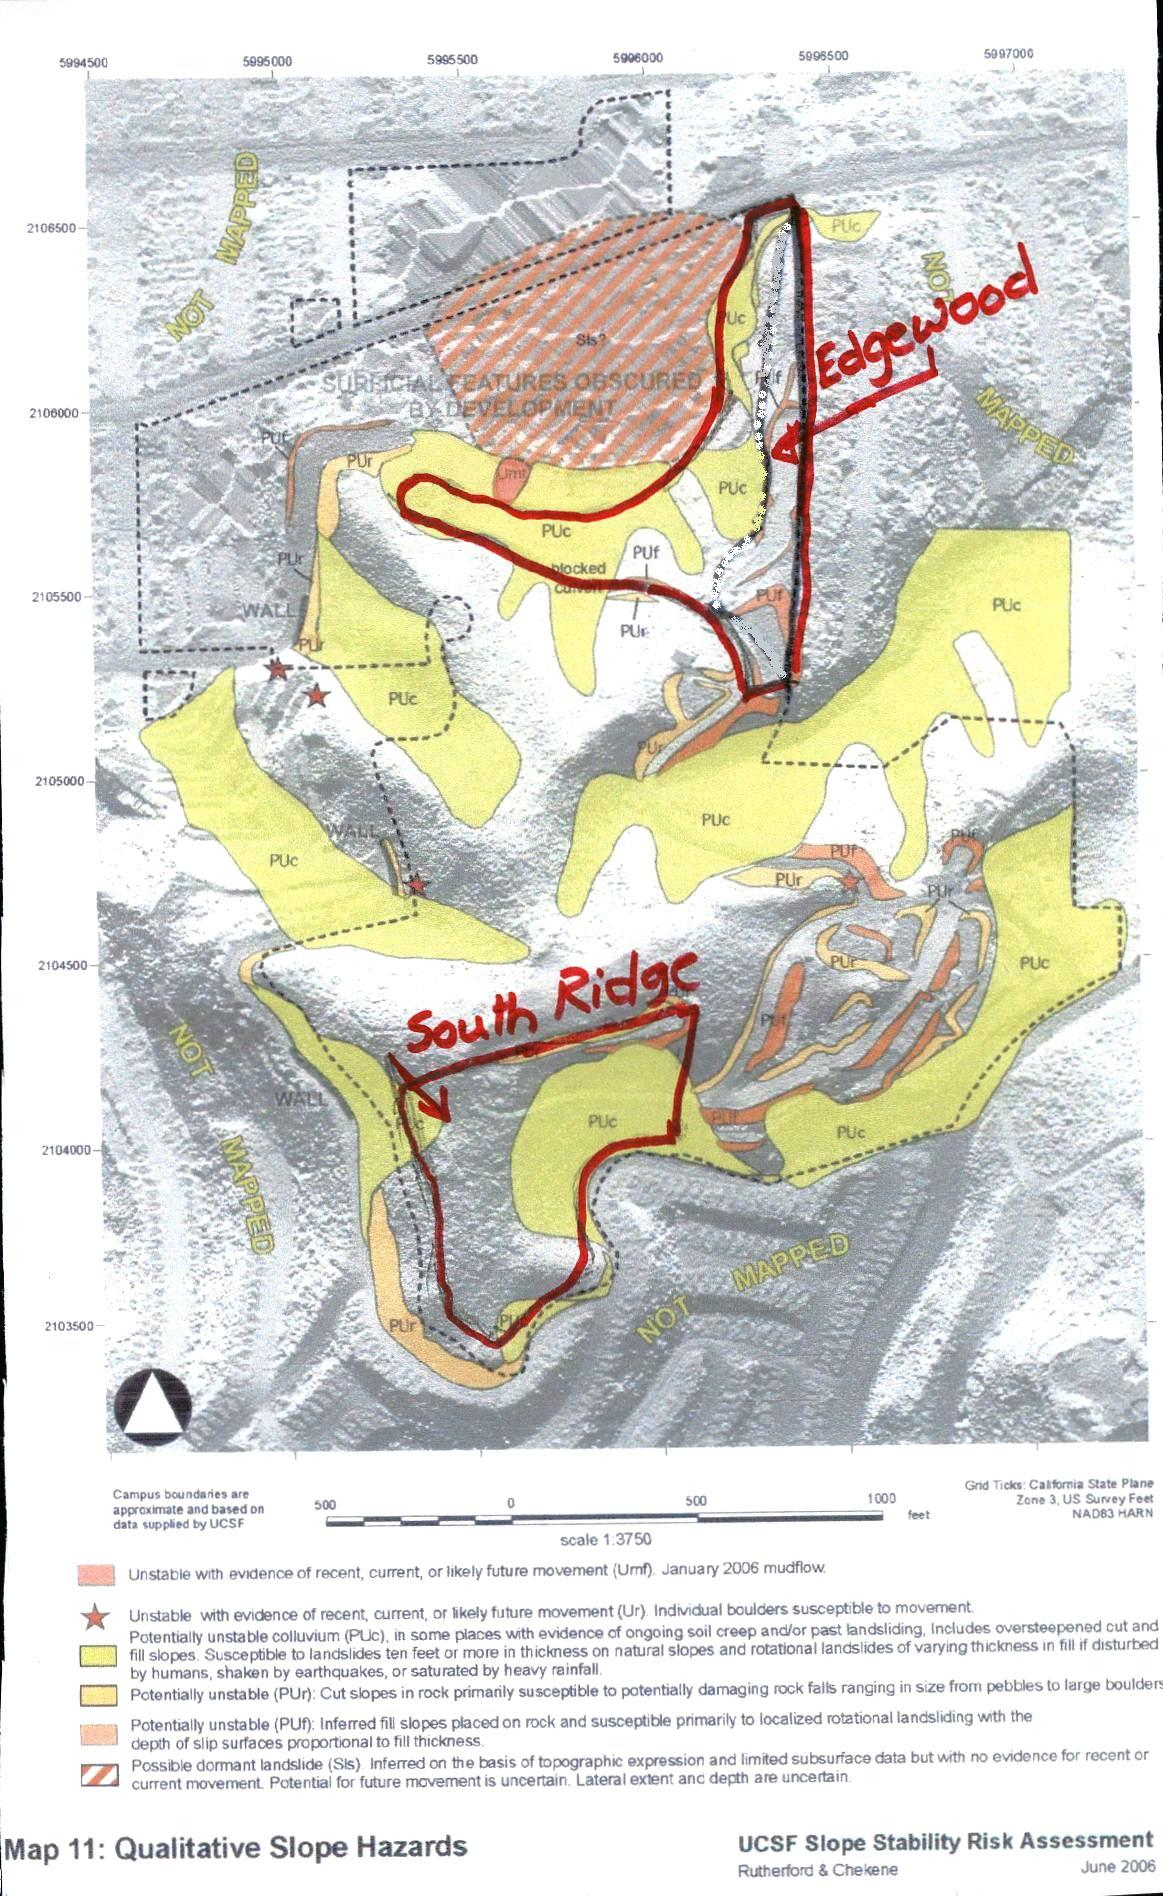 Red boundaries shown tree-felling sites. Colored areas indicate landslide risk.